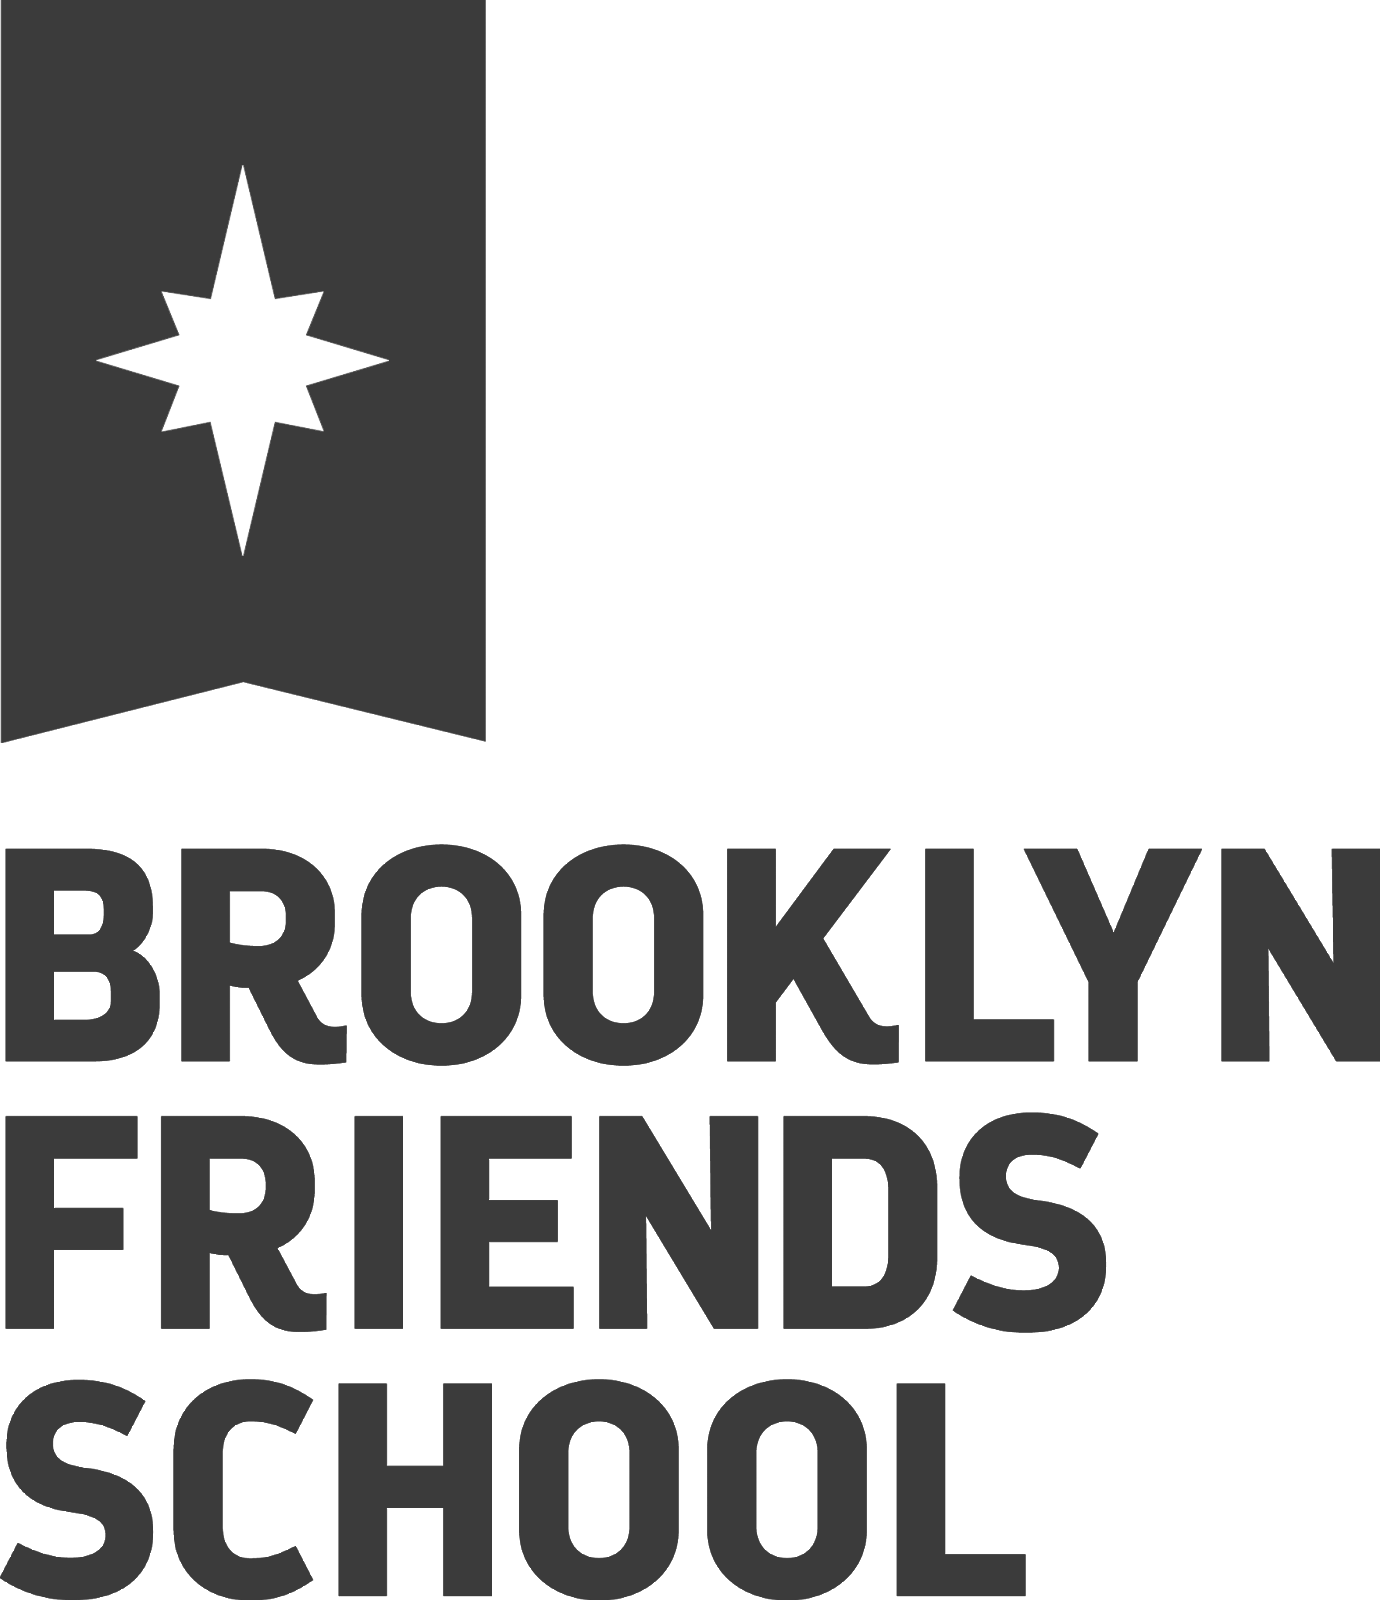 Brooklyn Friends chool